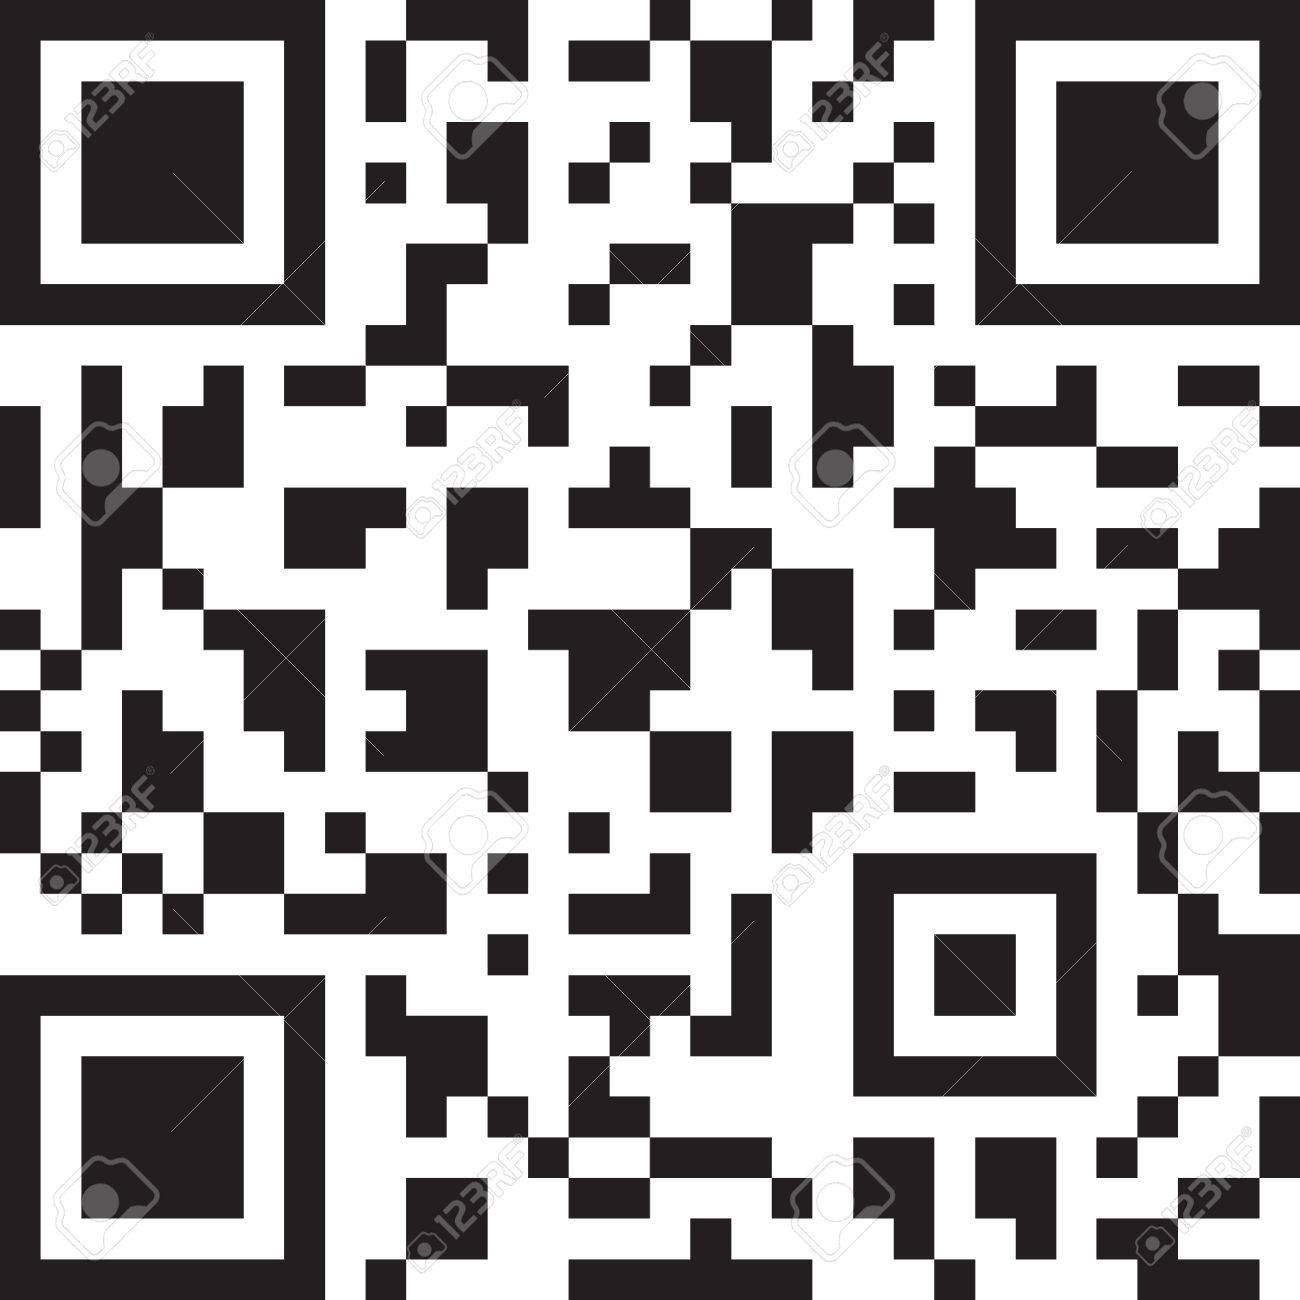 2D barcode  Black and white vector illustration